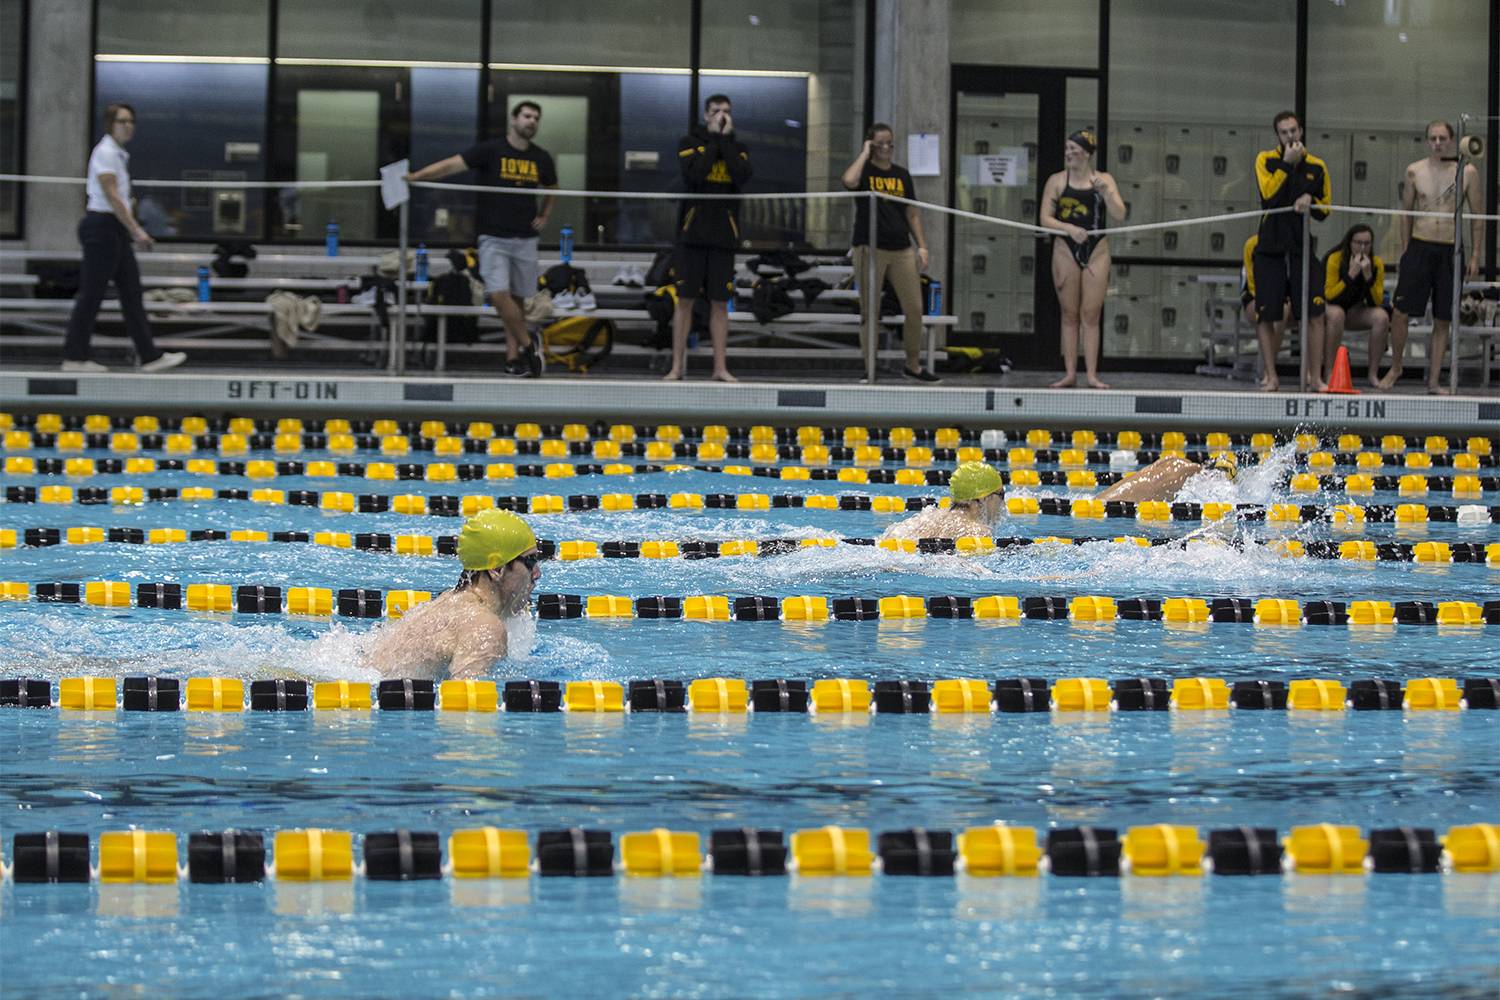 Swimmers+race+in+a+breaststroke+event+during+the+Iowa+Swimming+and+Diving+Intrasquad+Meet+at+the+Campus+Recreation+and+Wellness+Center+on+Saturday%2C+September+29%2C+2018.+